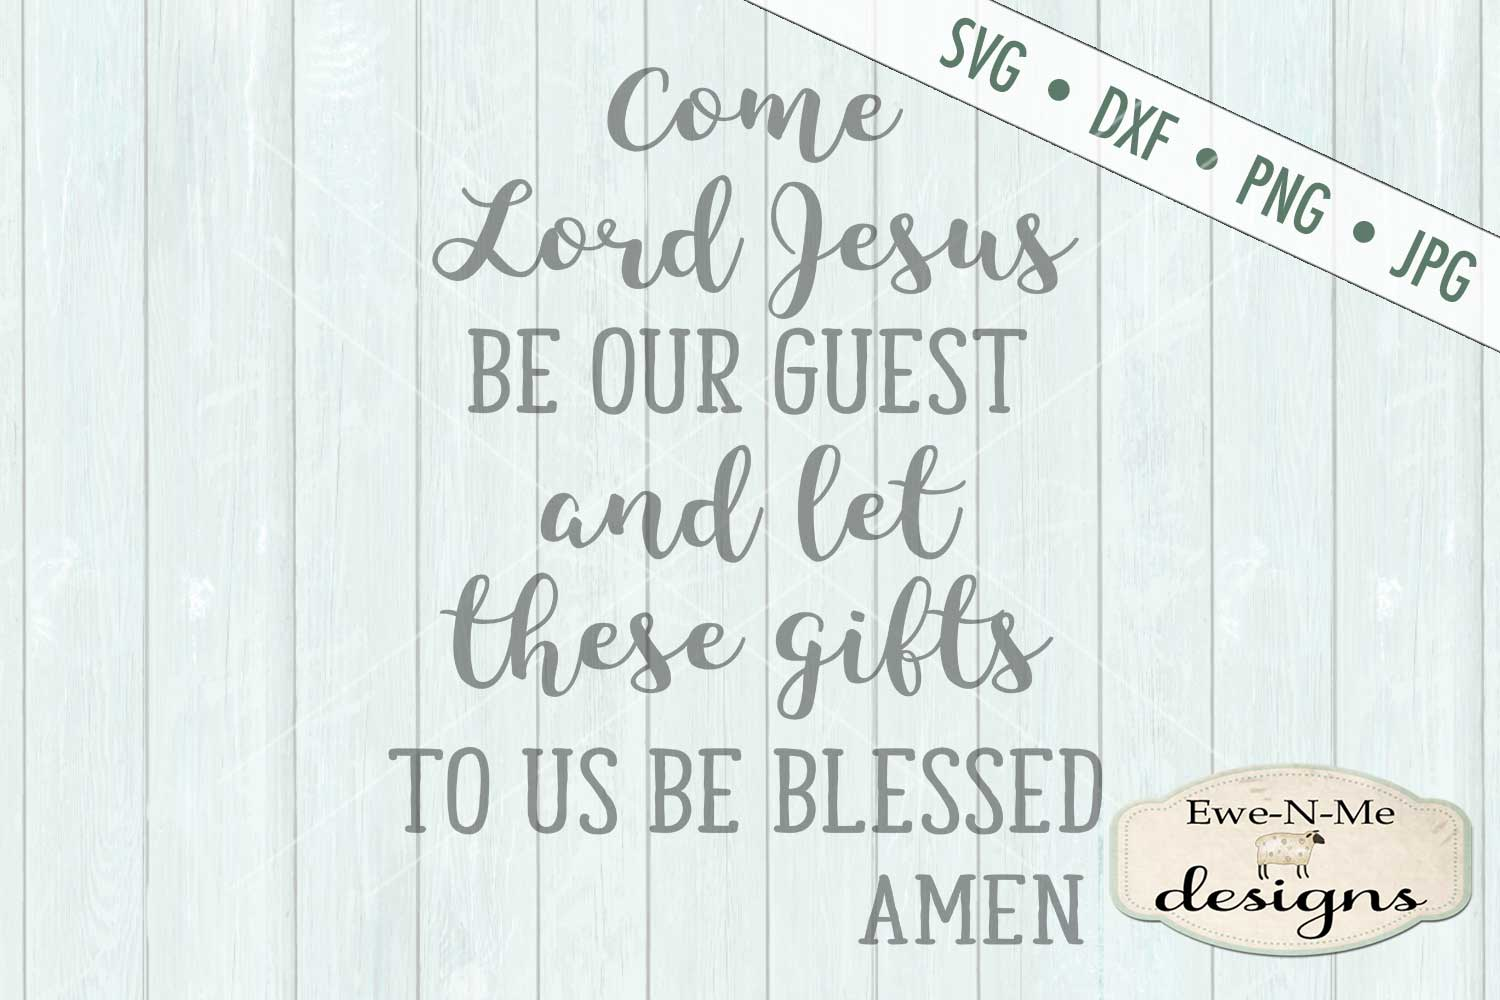 Table Prayer Christian SVG DXF Cut File example image 2